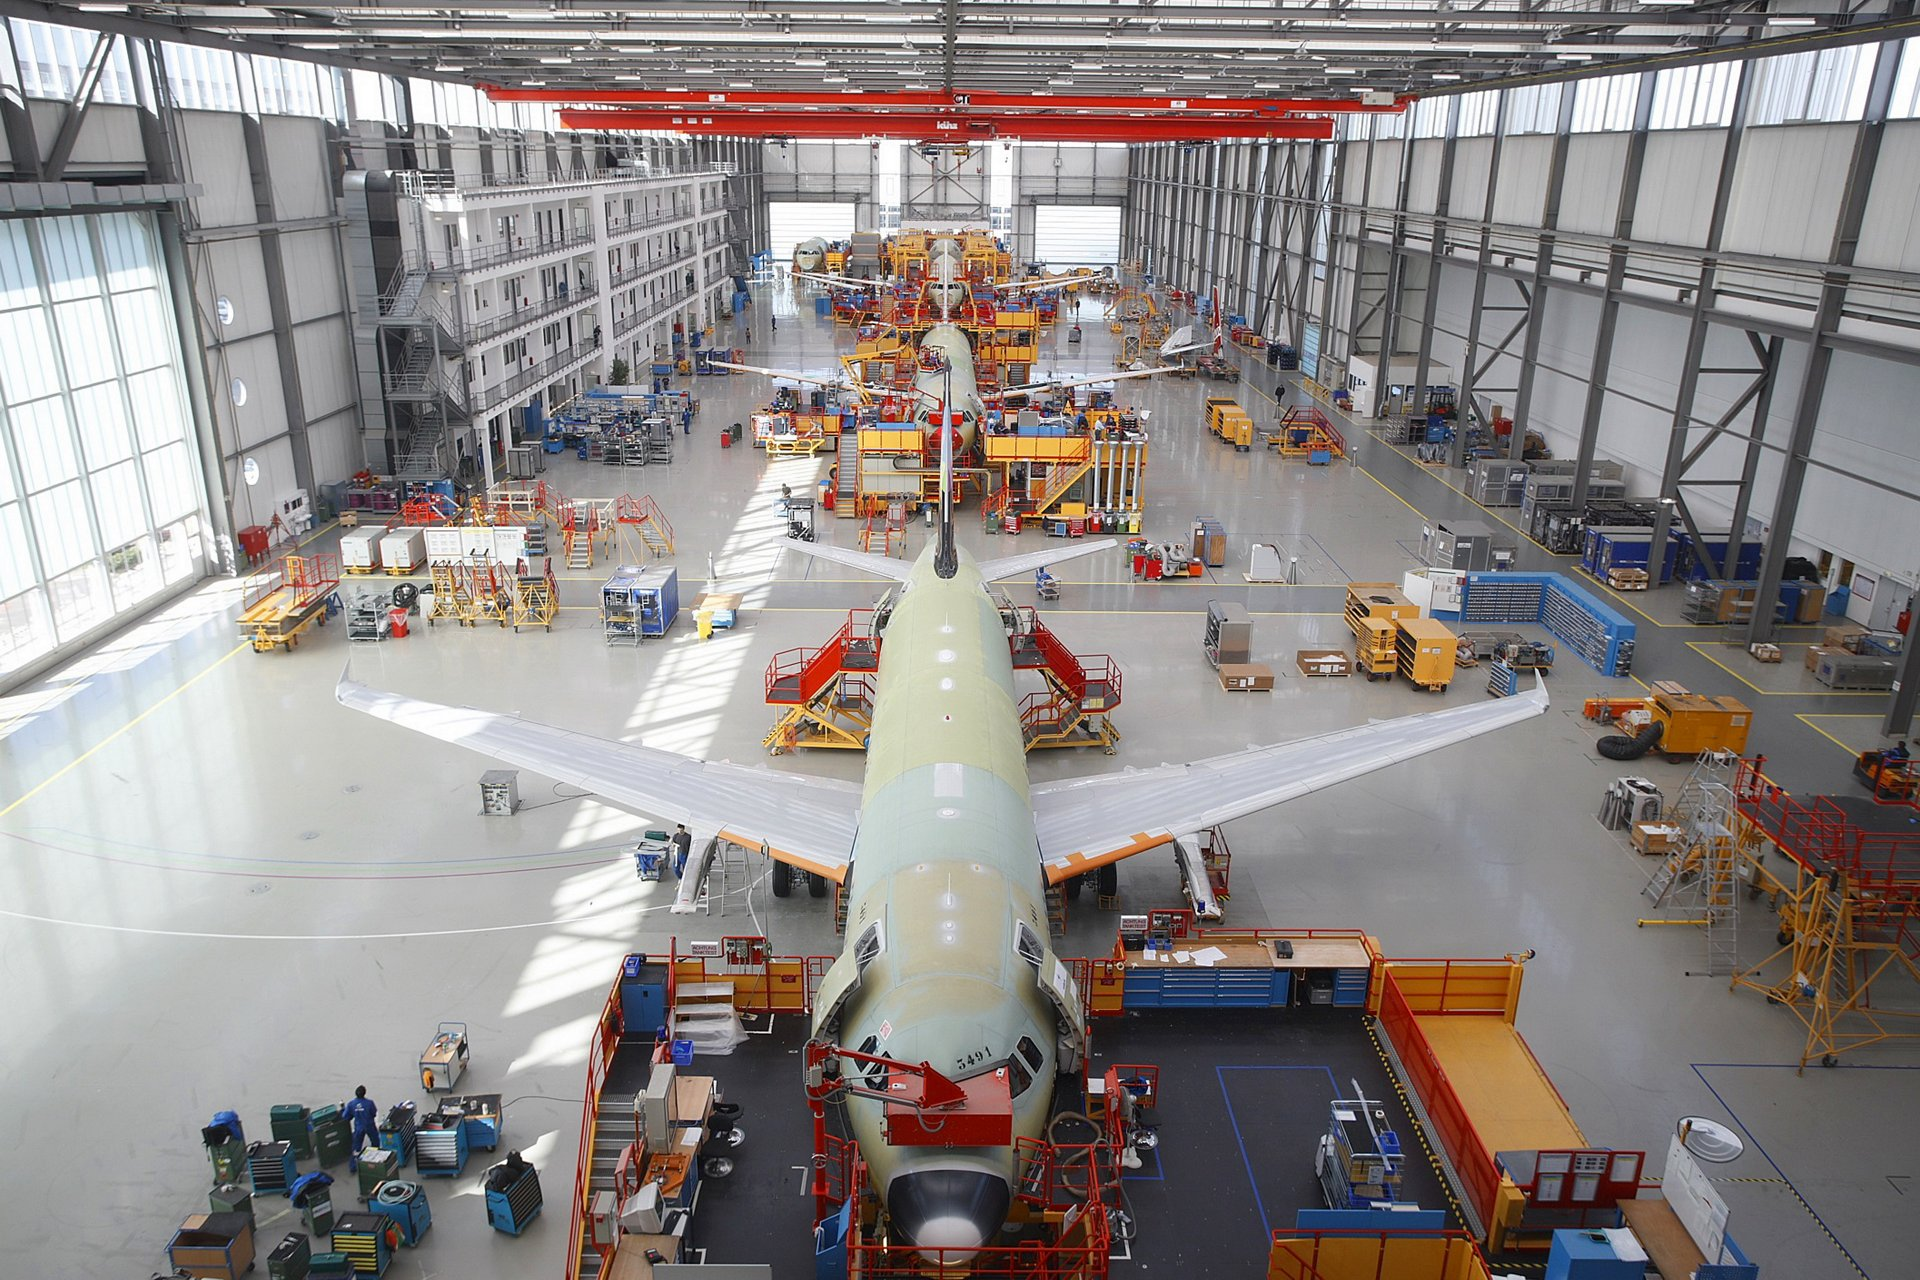 Boosted by continued strong customer demand for the A320 Family jetliners, Airbus announces increased production rates of 38 aircraft per month, which will begin in August 2011, increasing to 40 per month in the first quarter of 2012  (30 July 2010)